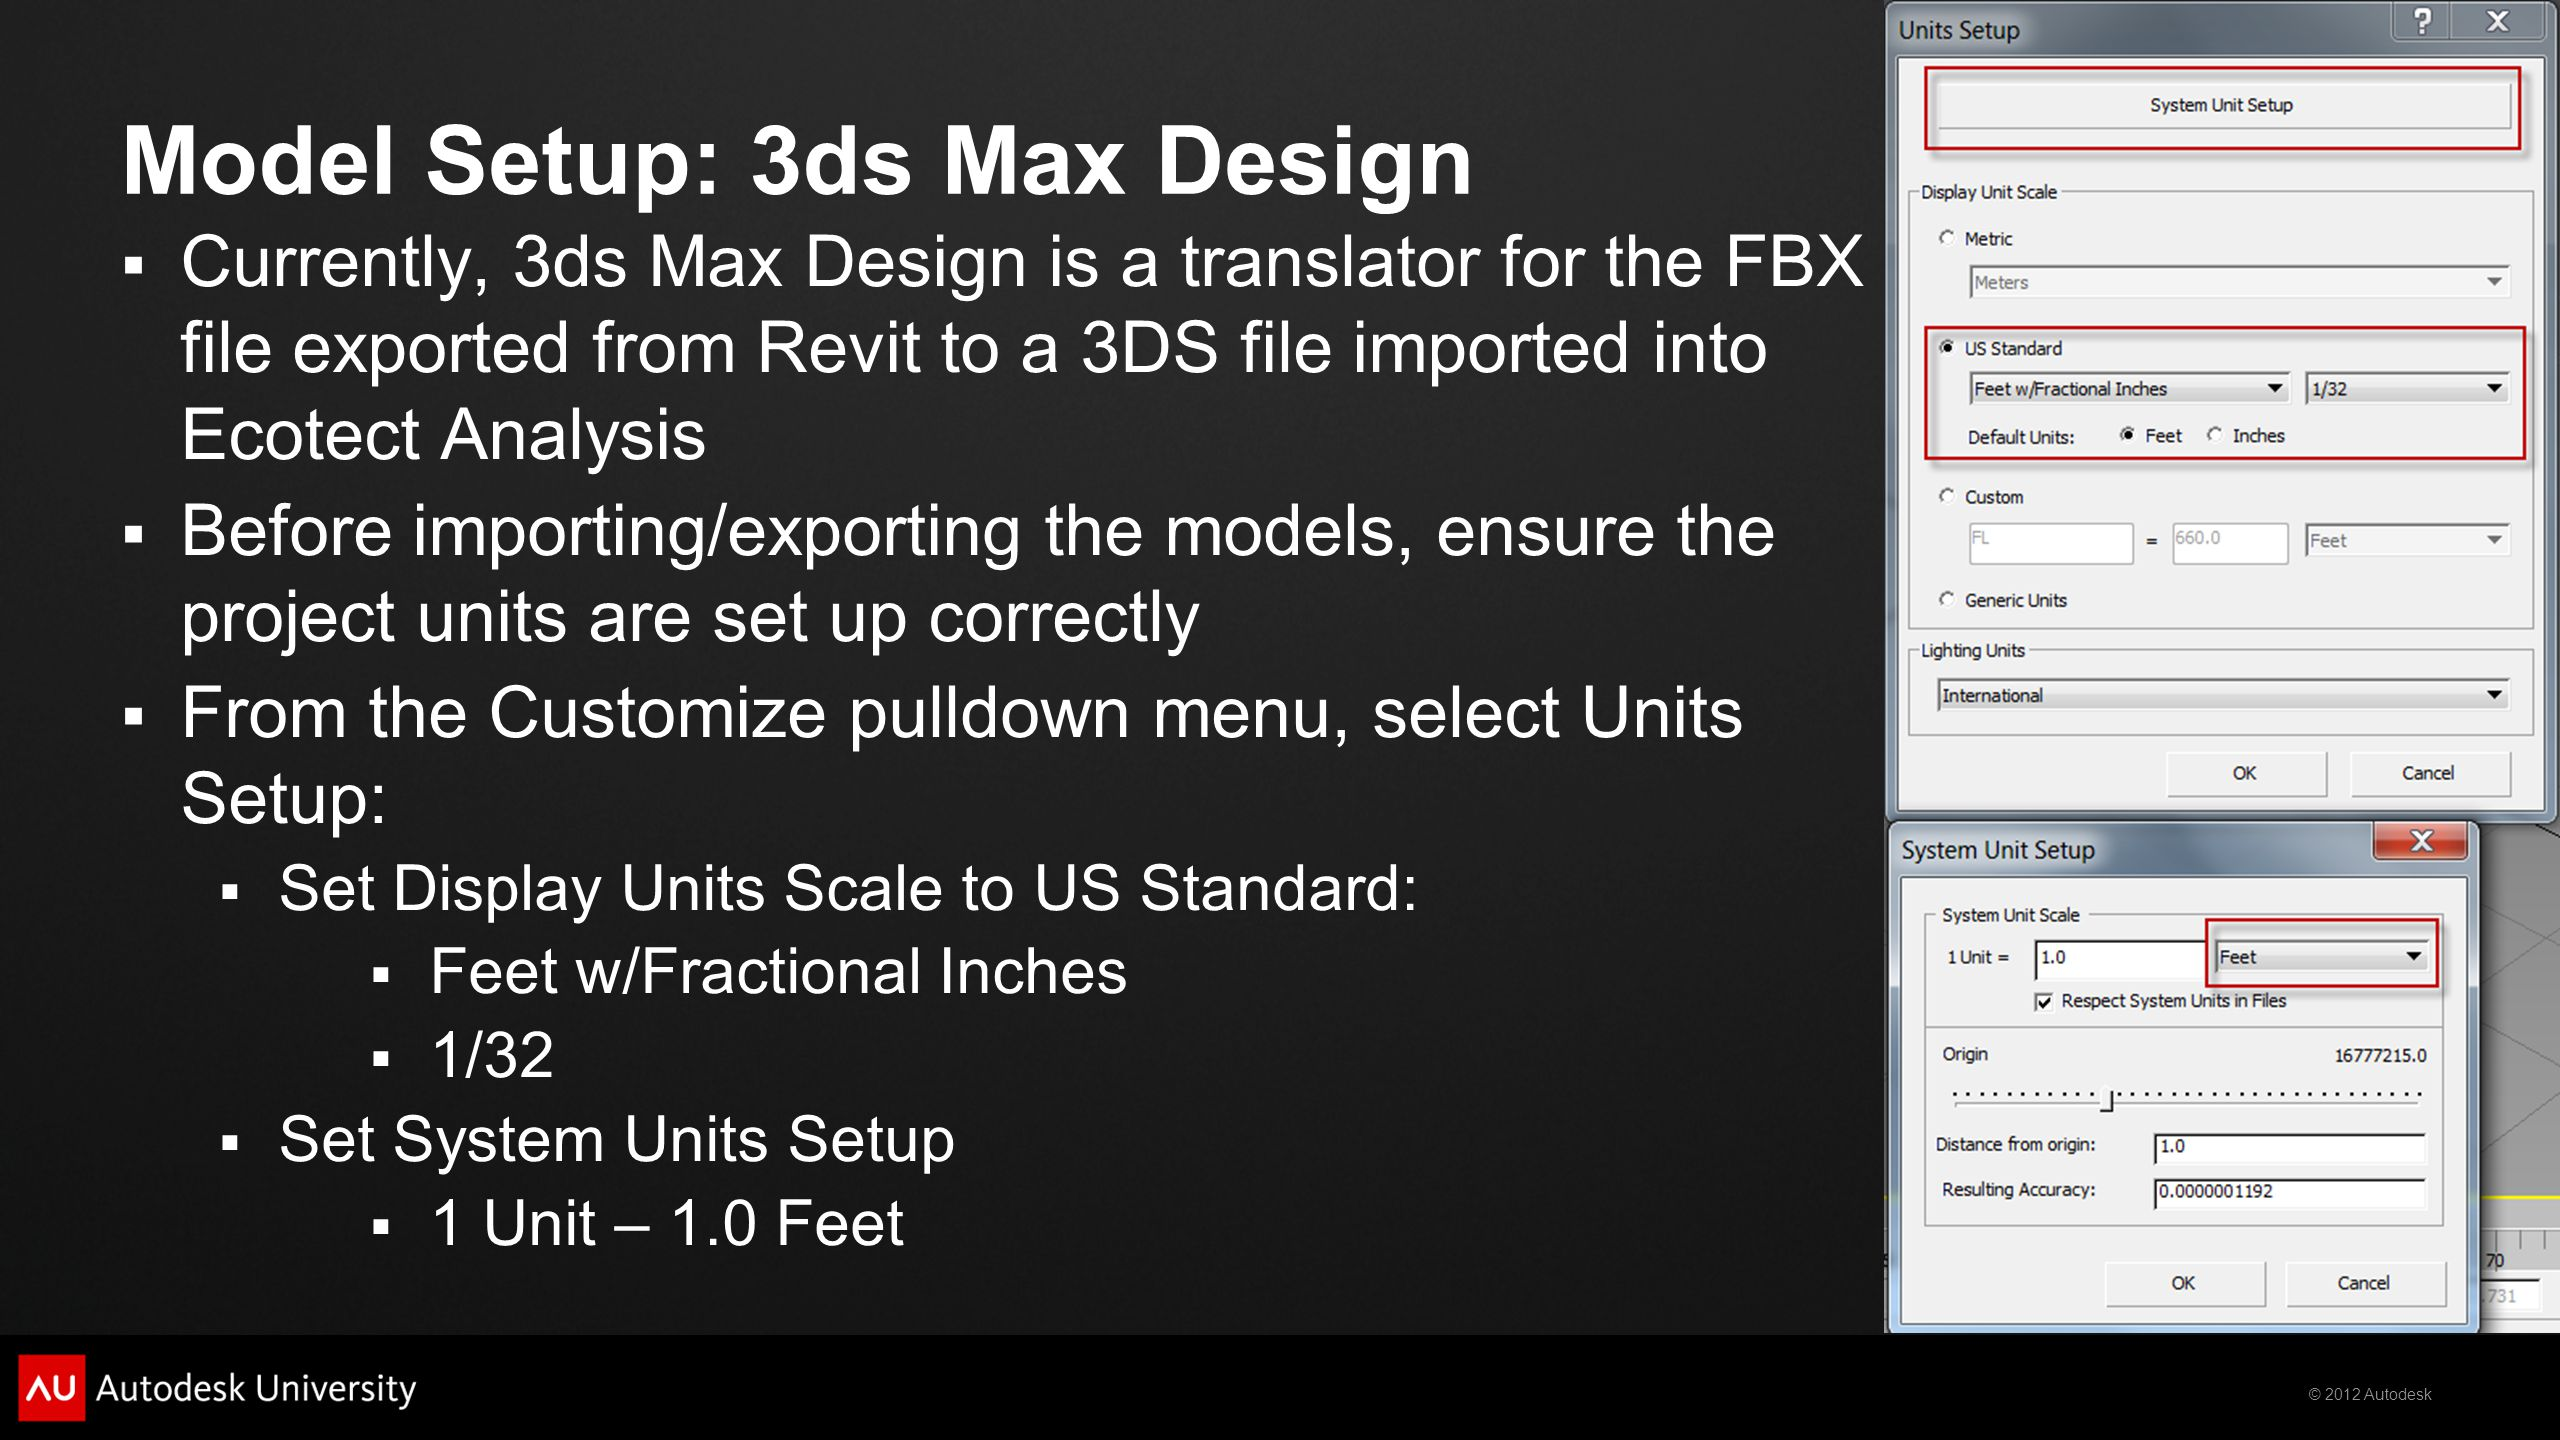 Model Setup: 3ds Max Design